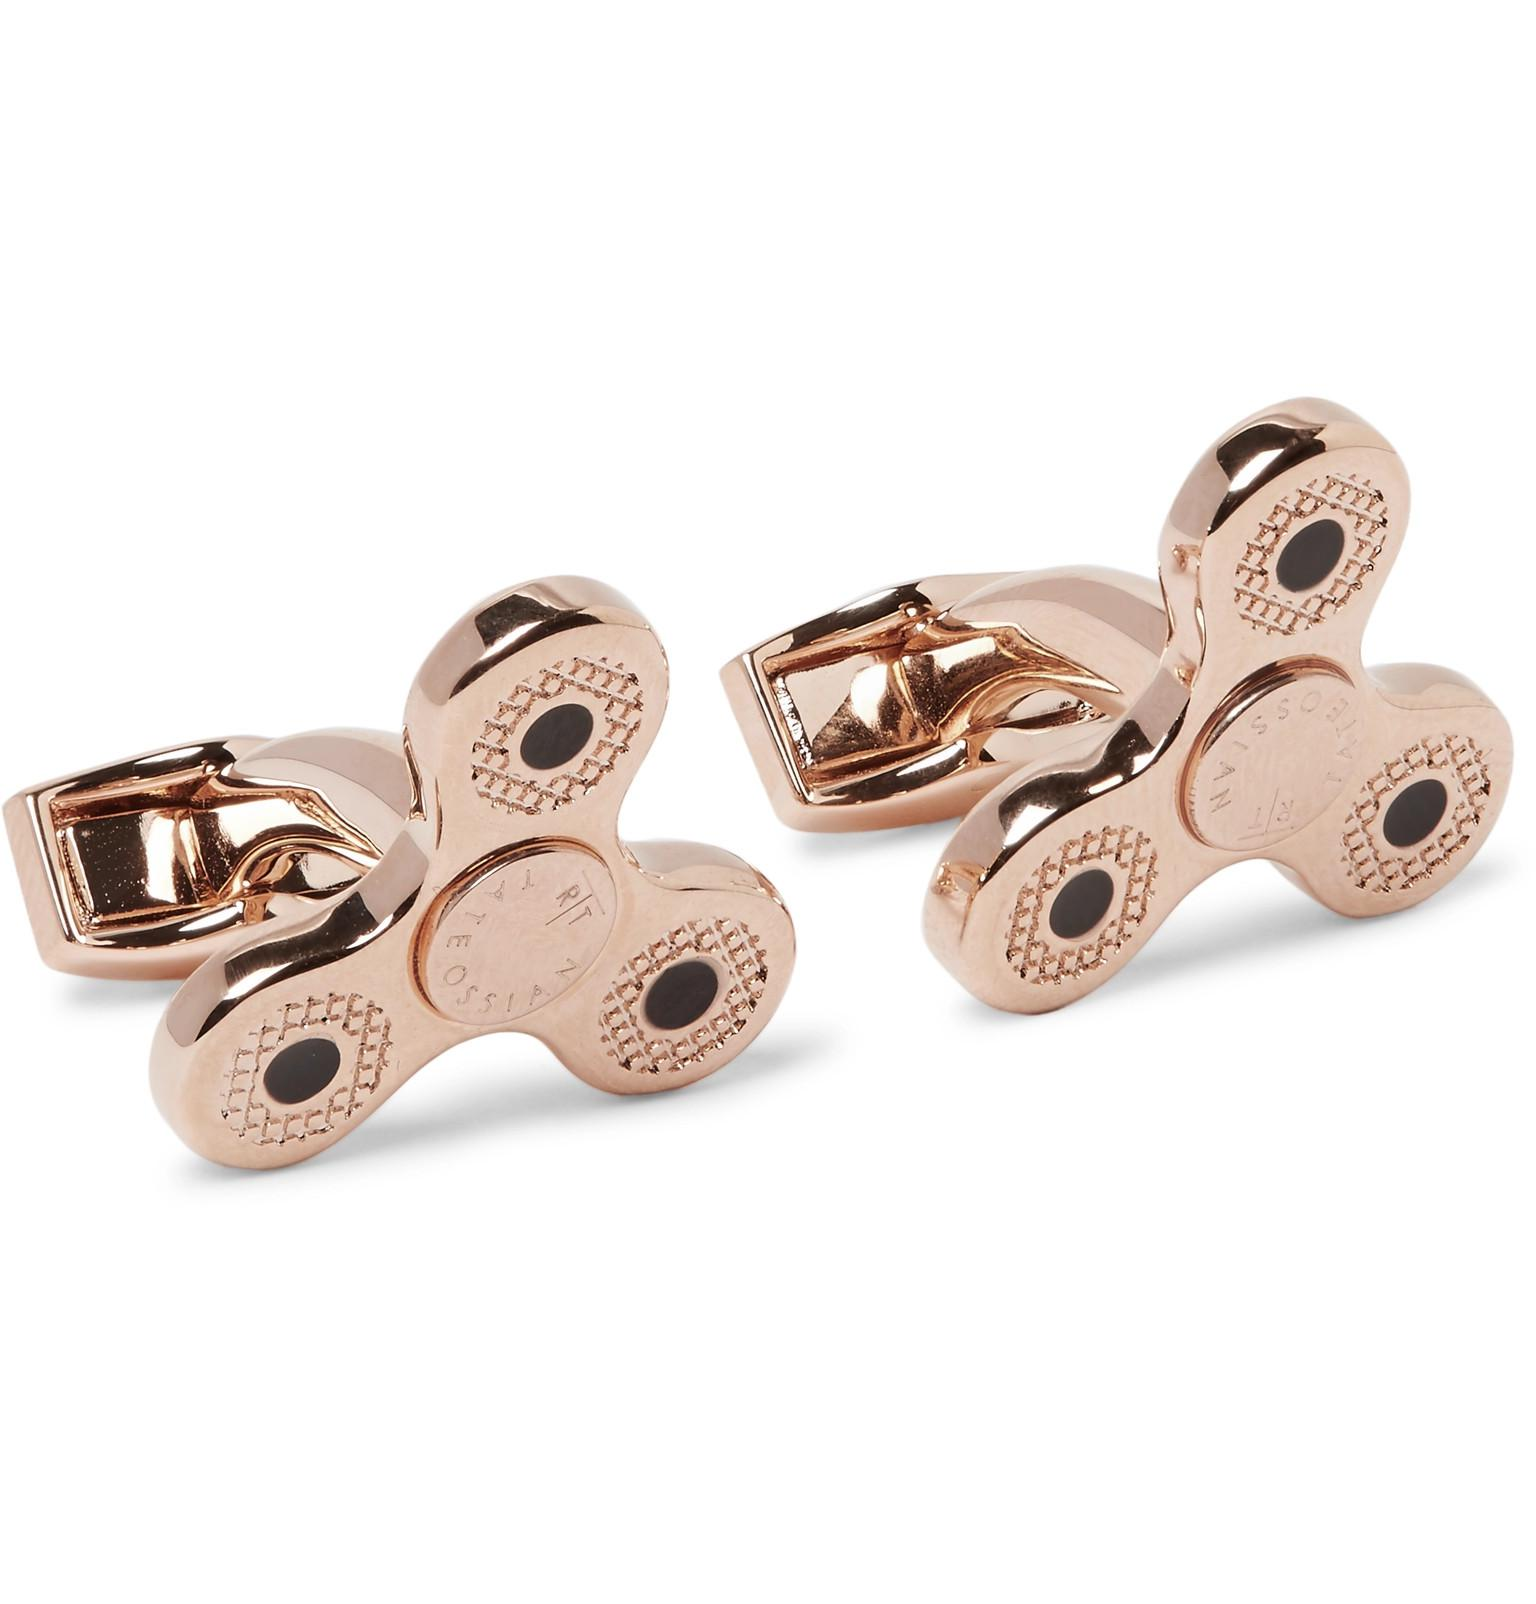 Tateossian Triptych Enamelled Rose Gold-plated Cufflinks - Rose gold GqMhjbwojs